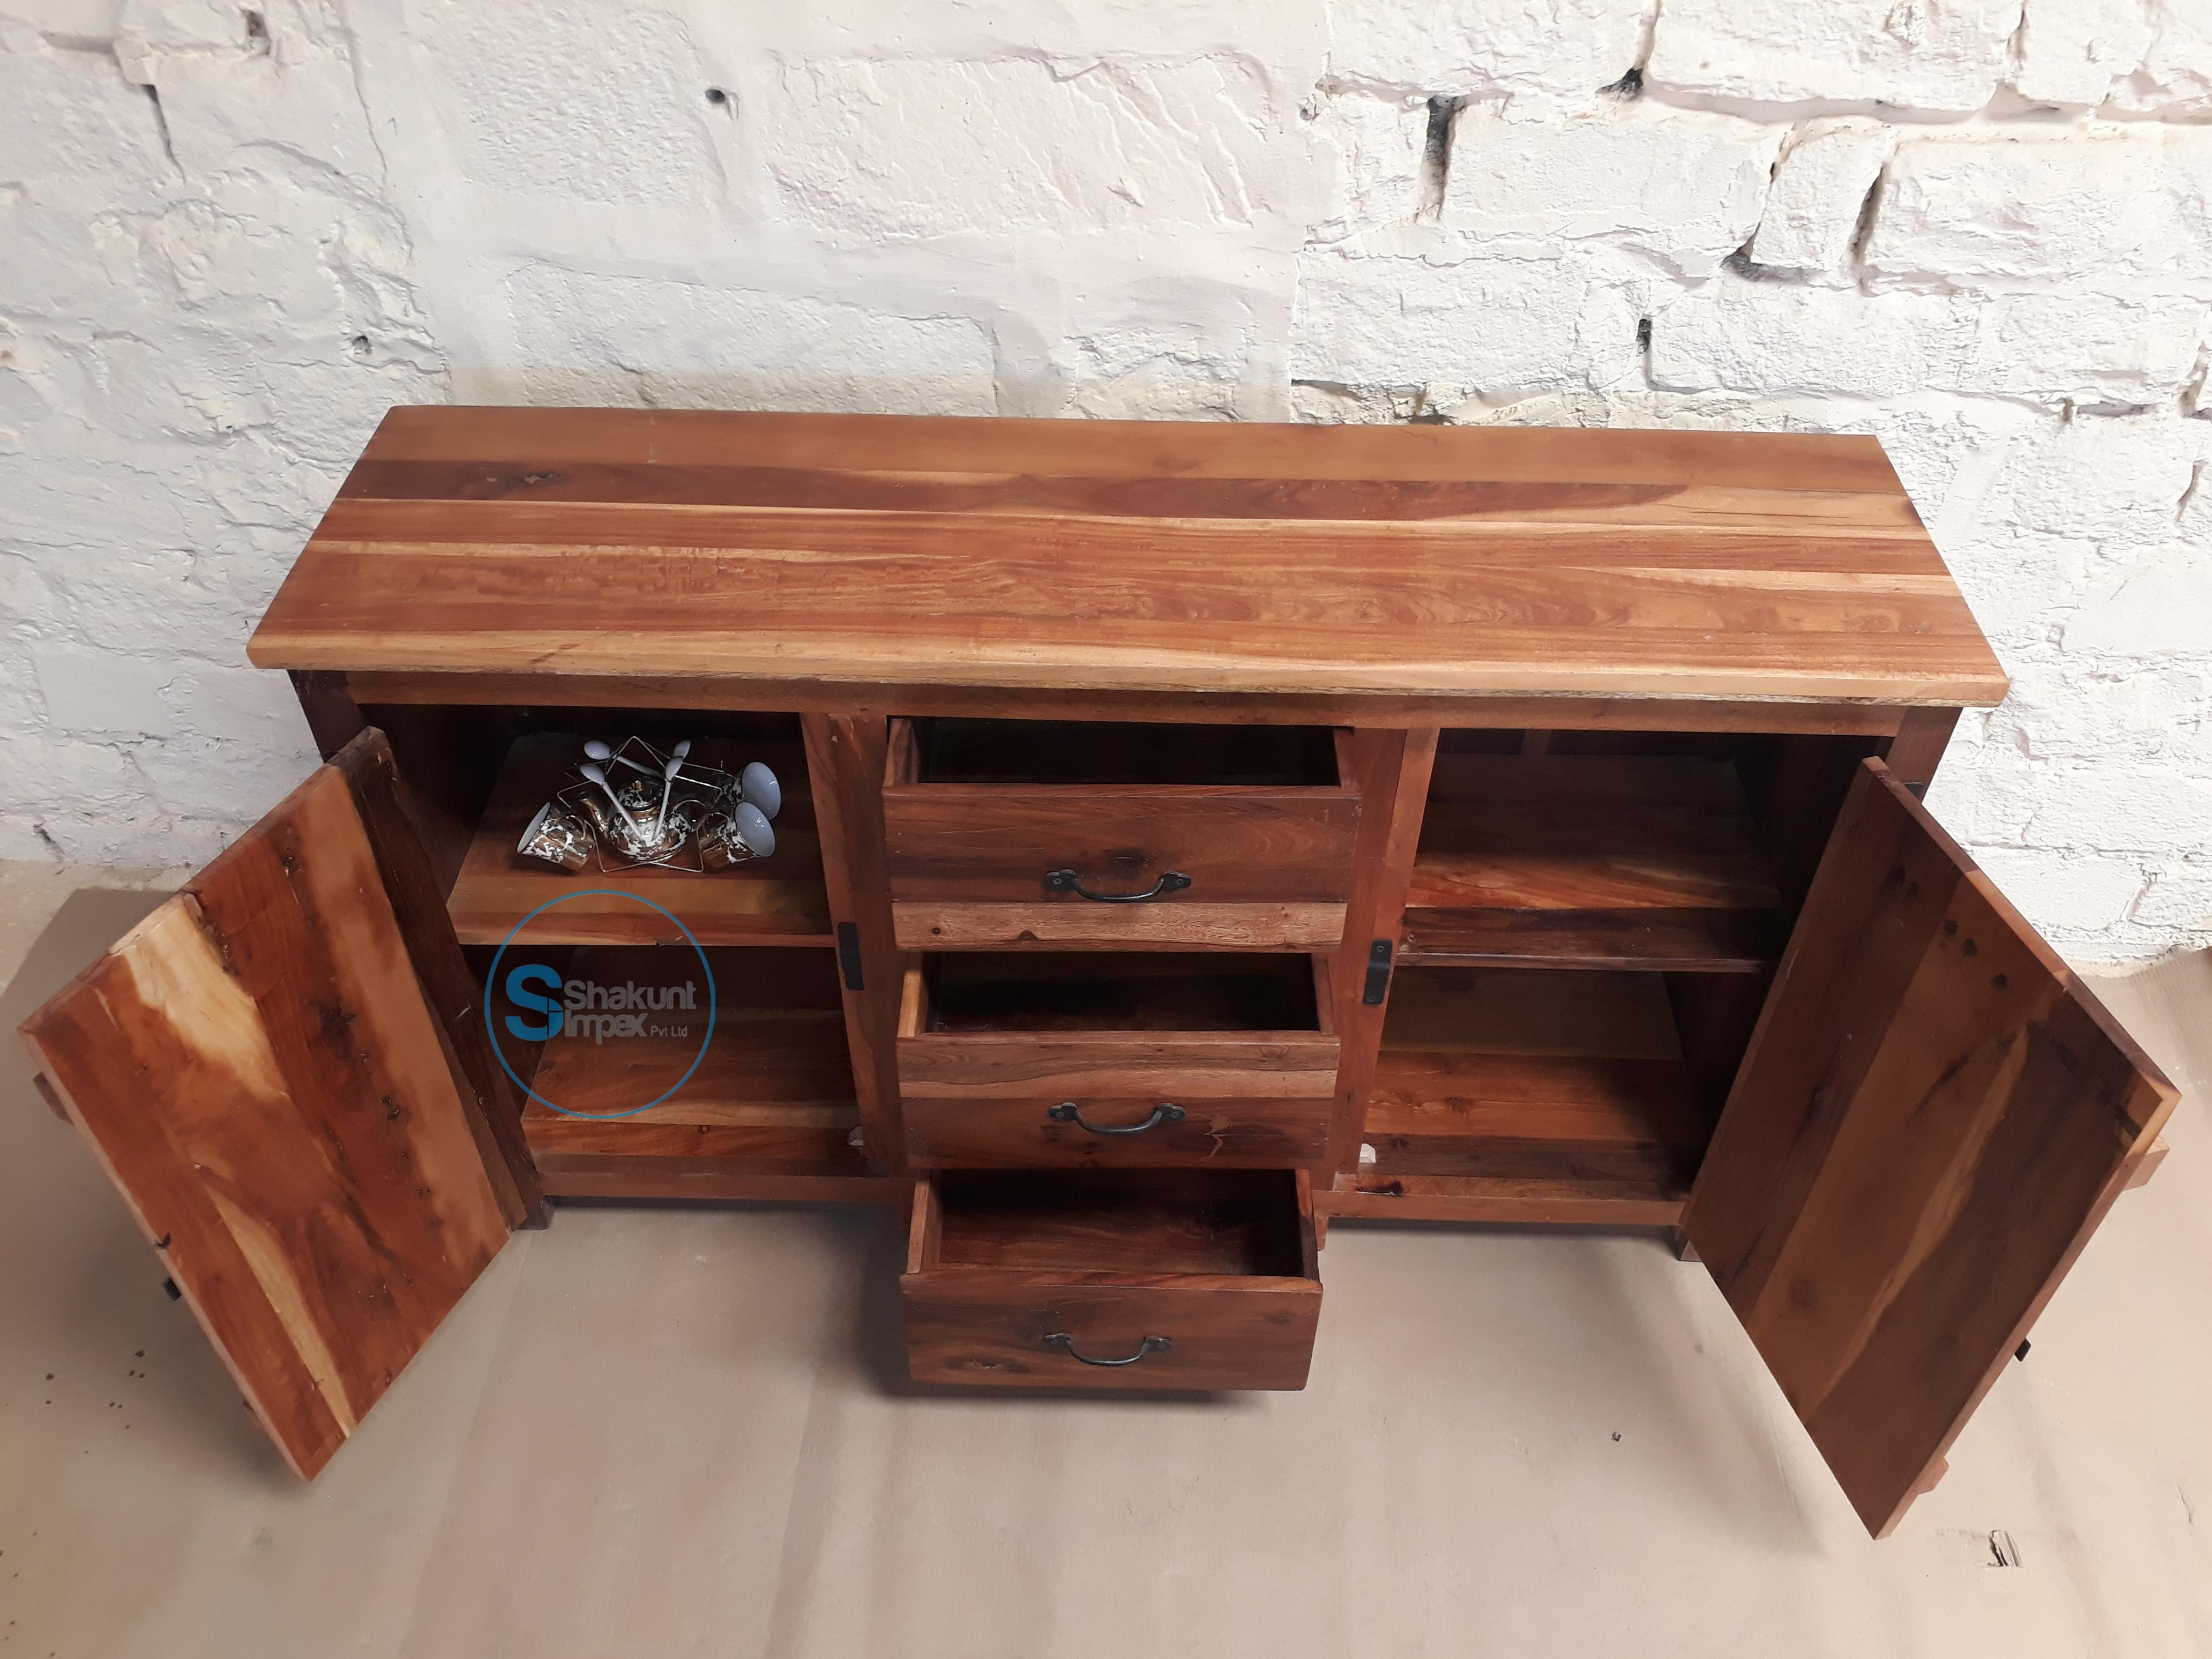 Reclaimed Wood Furniture Archives - Shakunt Vintage Furniture with regard to Metal Framed Reclaimed Wood Sideboards (Image 22 of 30)